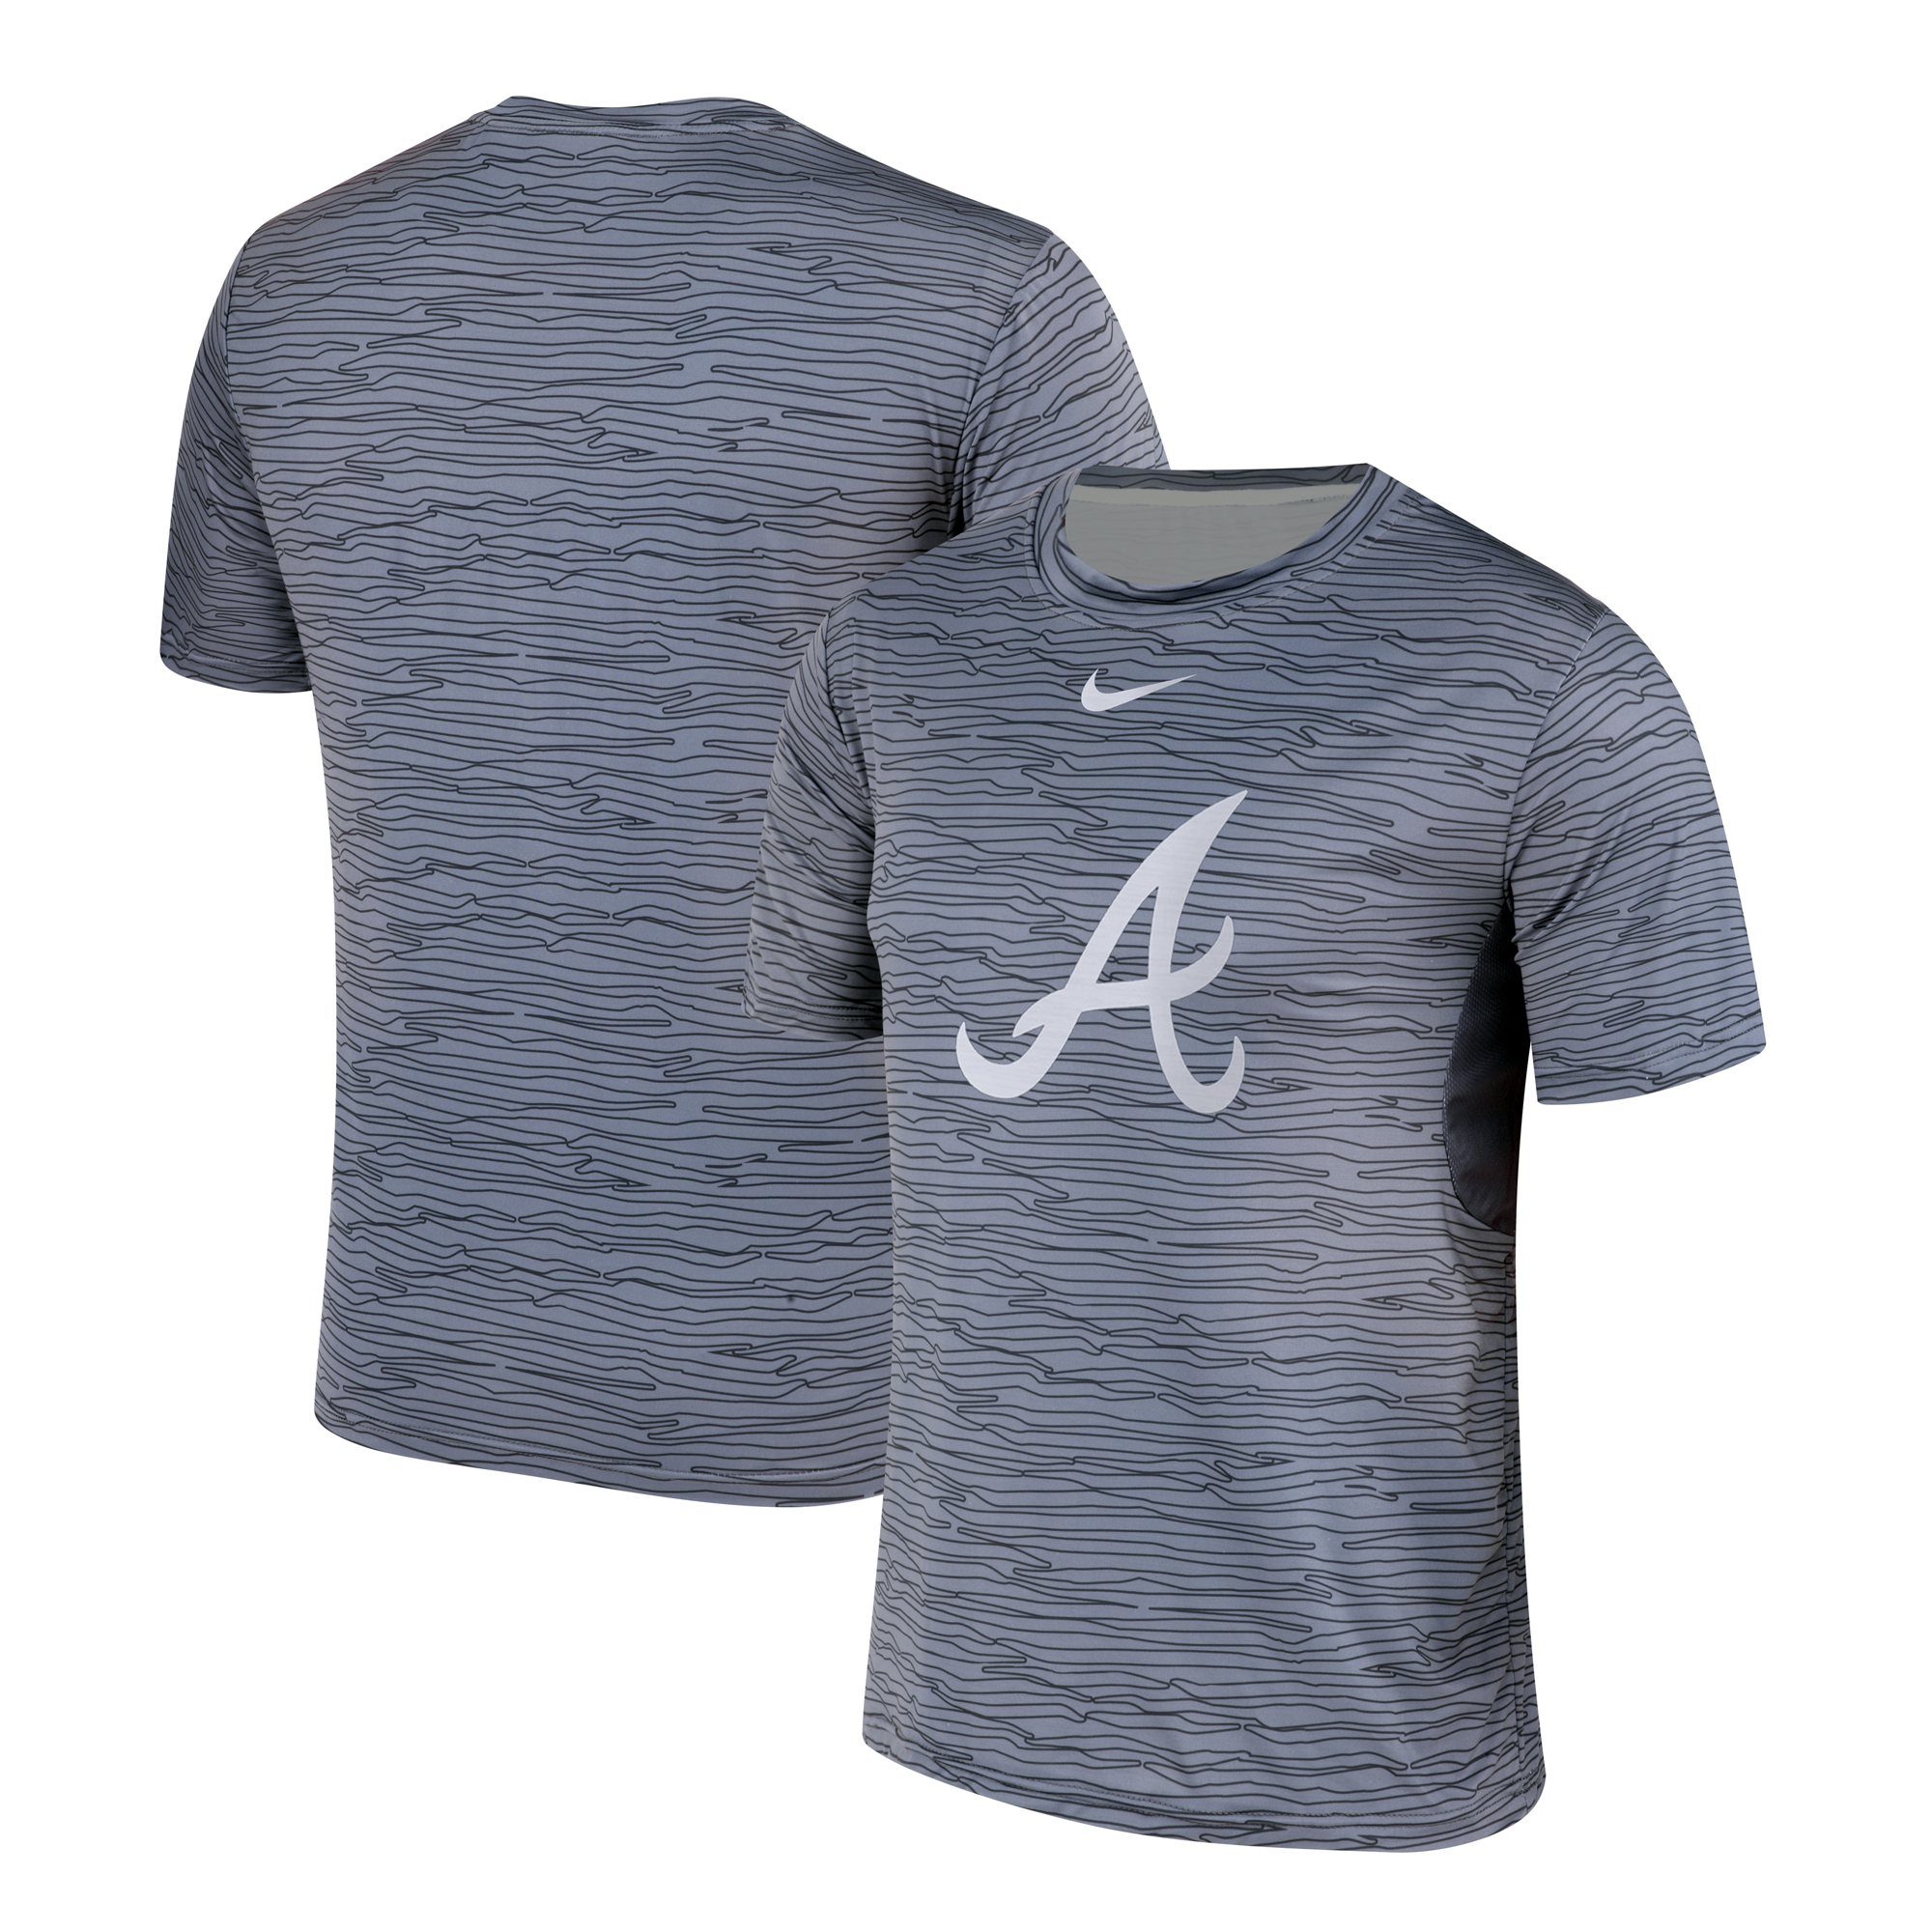 Nike Atlanta Braves Gray Black Striped Logo Performance T-Shirt